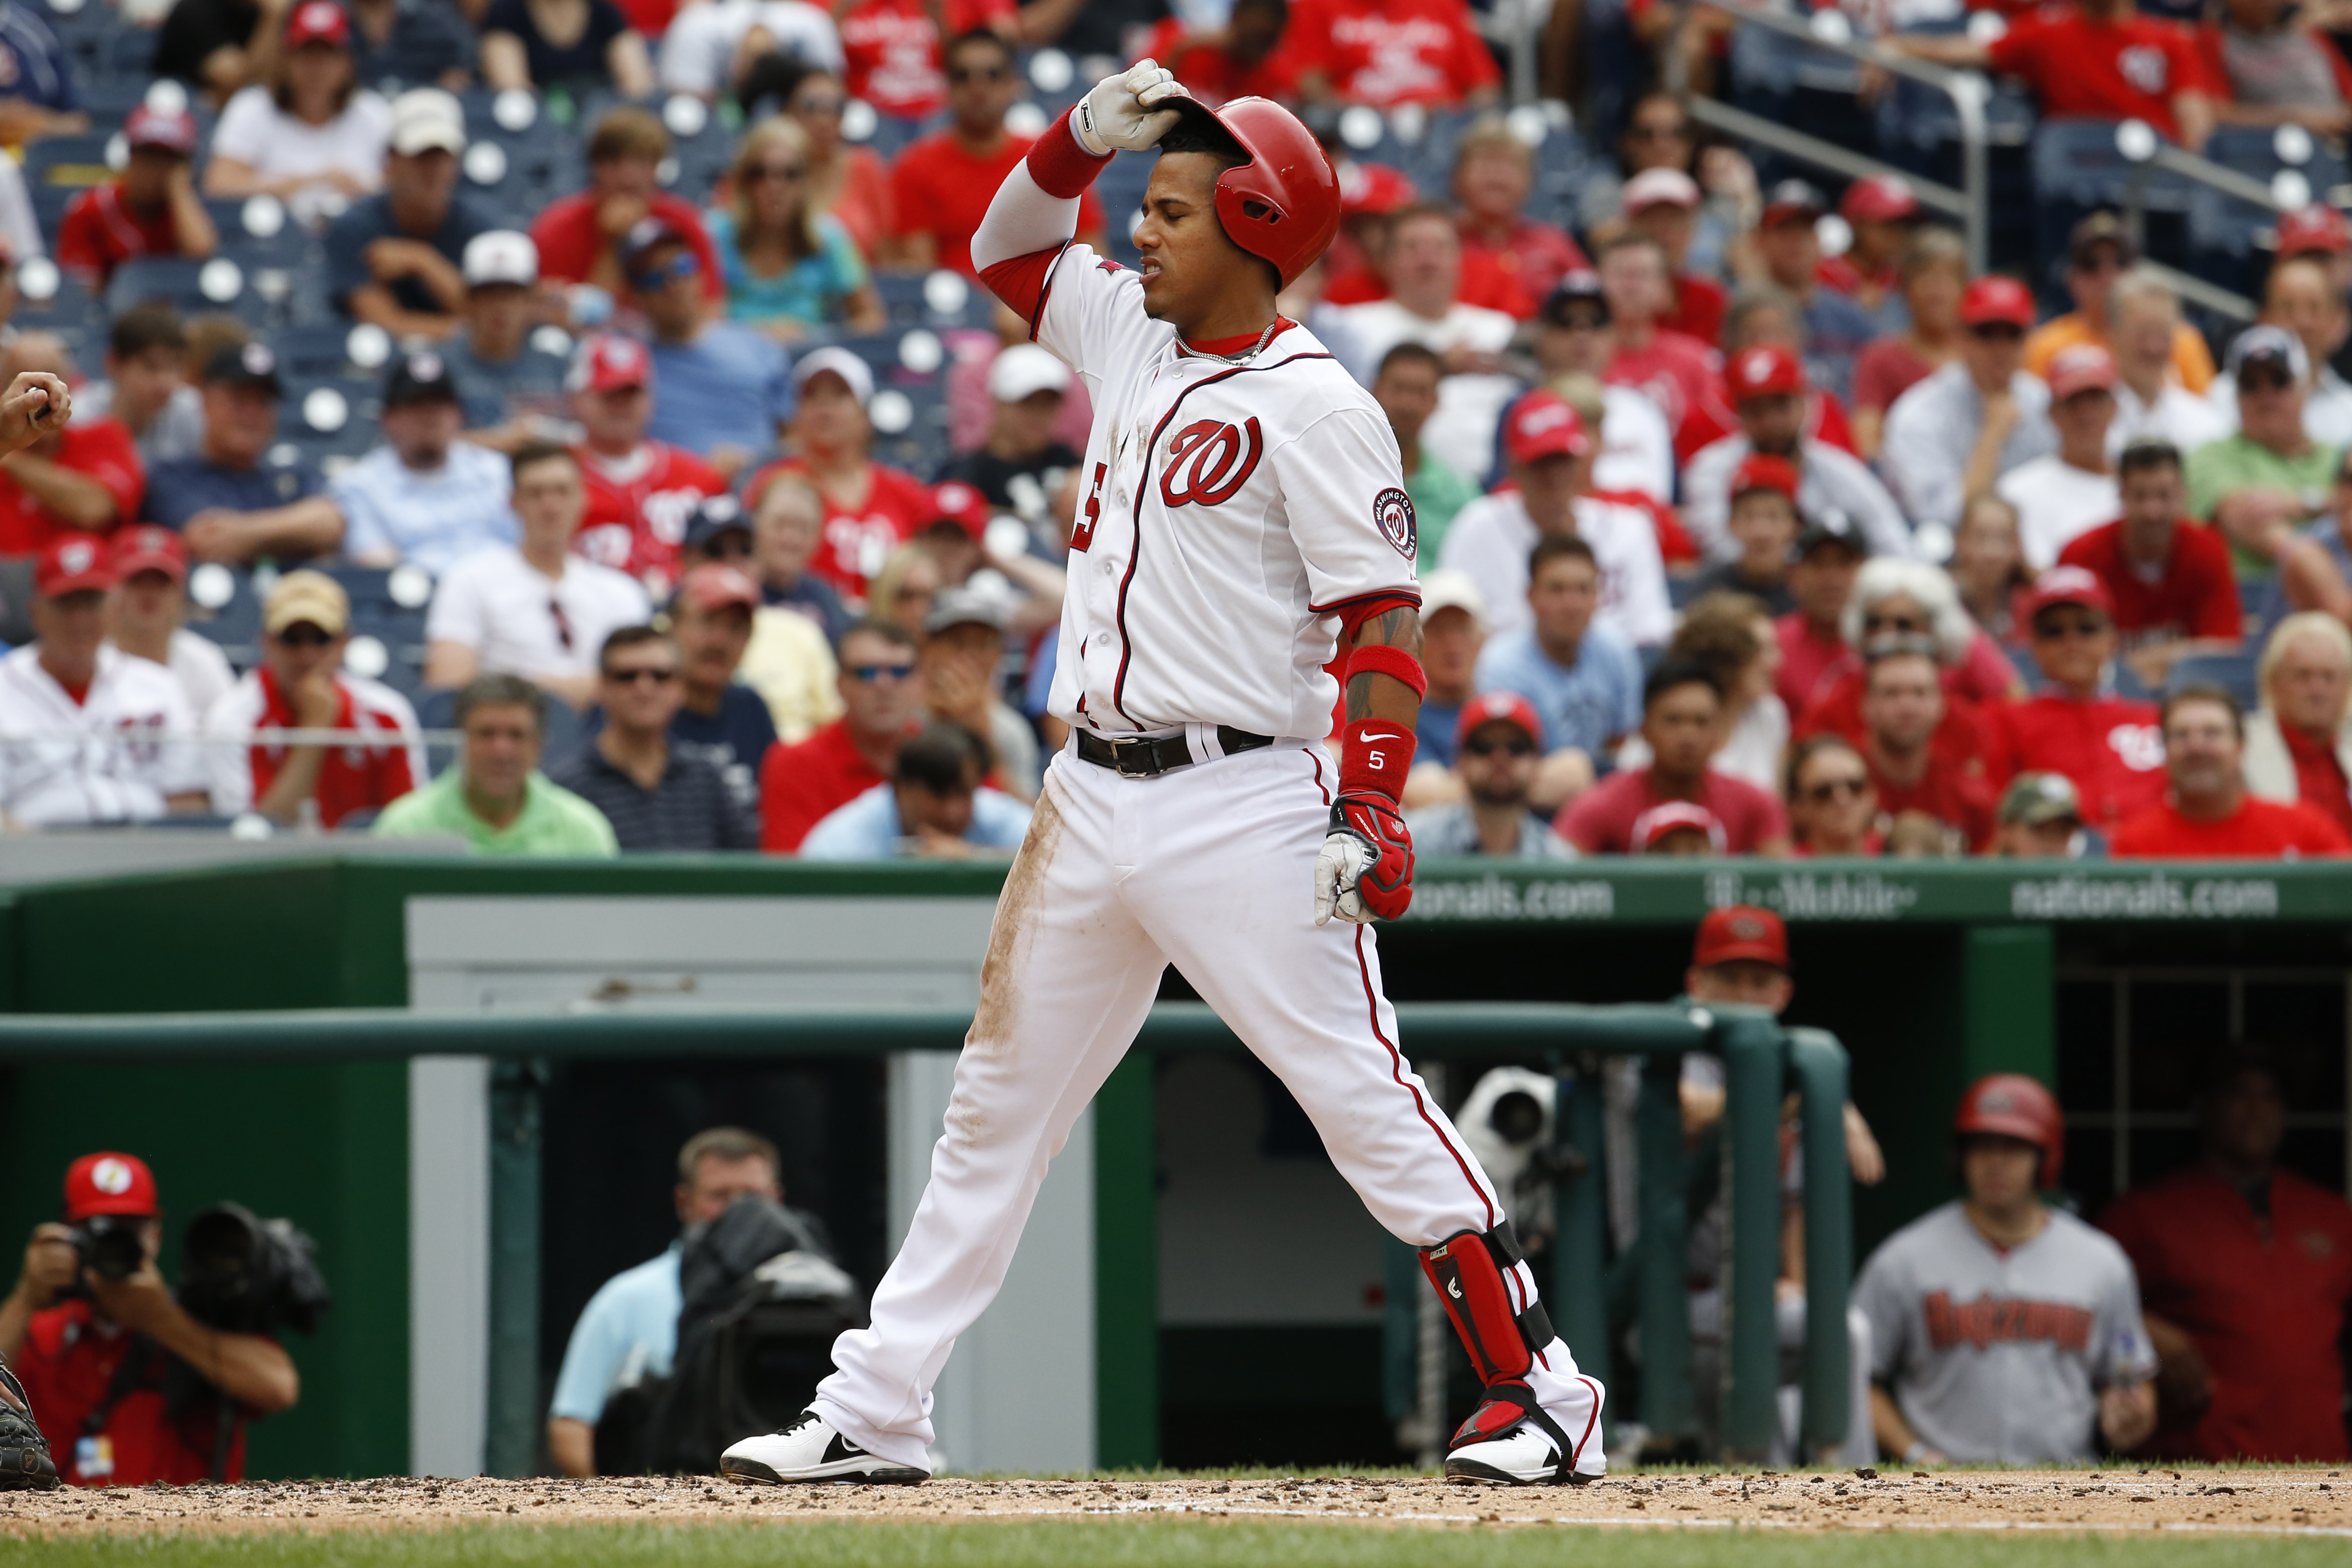 Washington Nationals' Yunel Escobar (5) reacts after his hand was hit by a pitch from the Arizona Diamondbacks in the third inning of a baseball game in Washington, Thursday, Aug. 6, 2015. (AP Photo/Jacquelyn Martin)